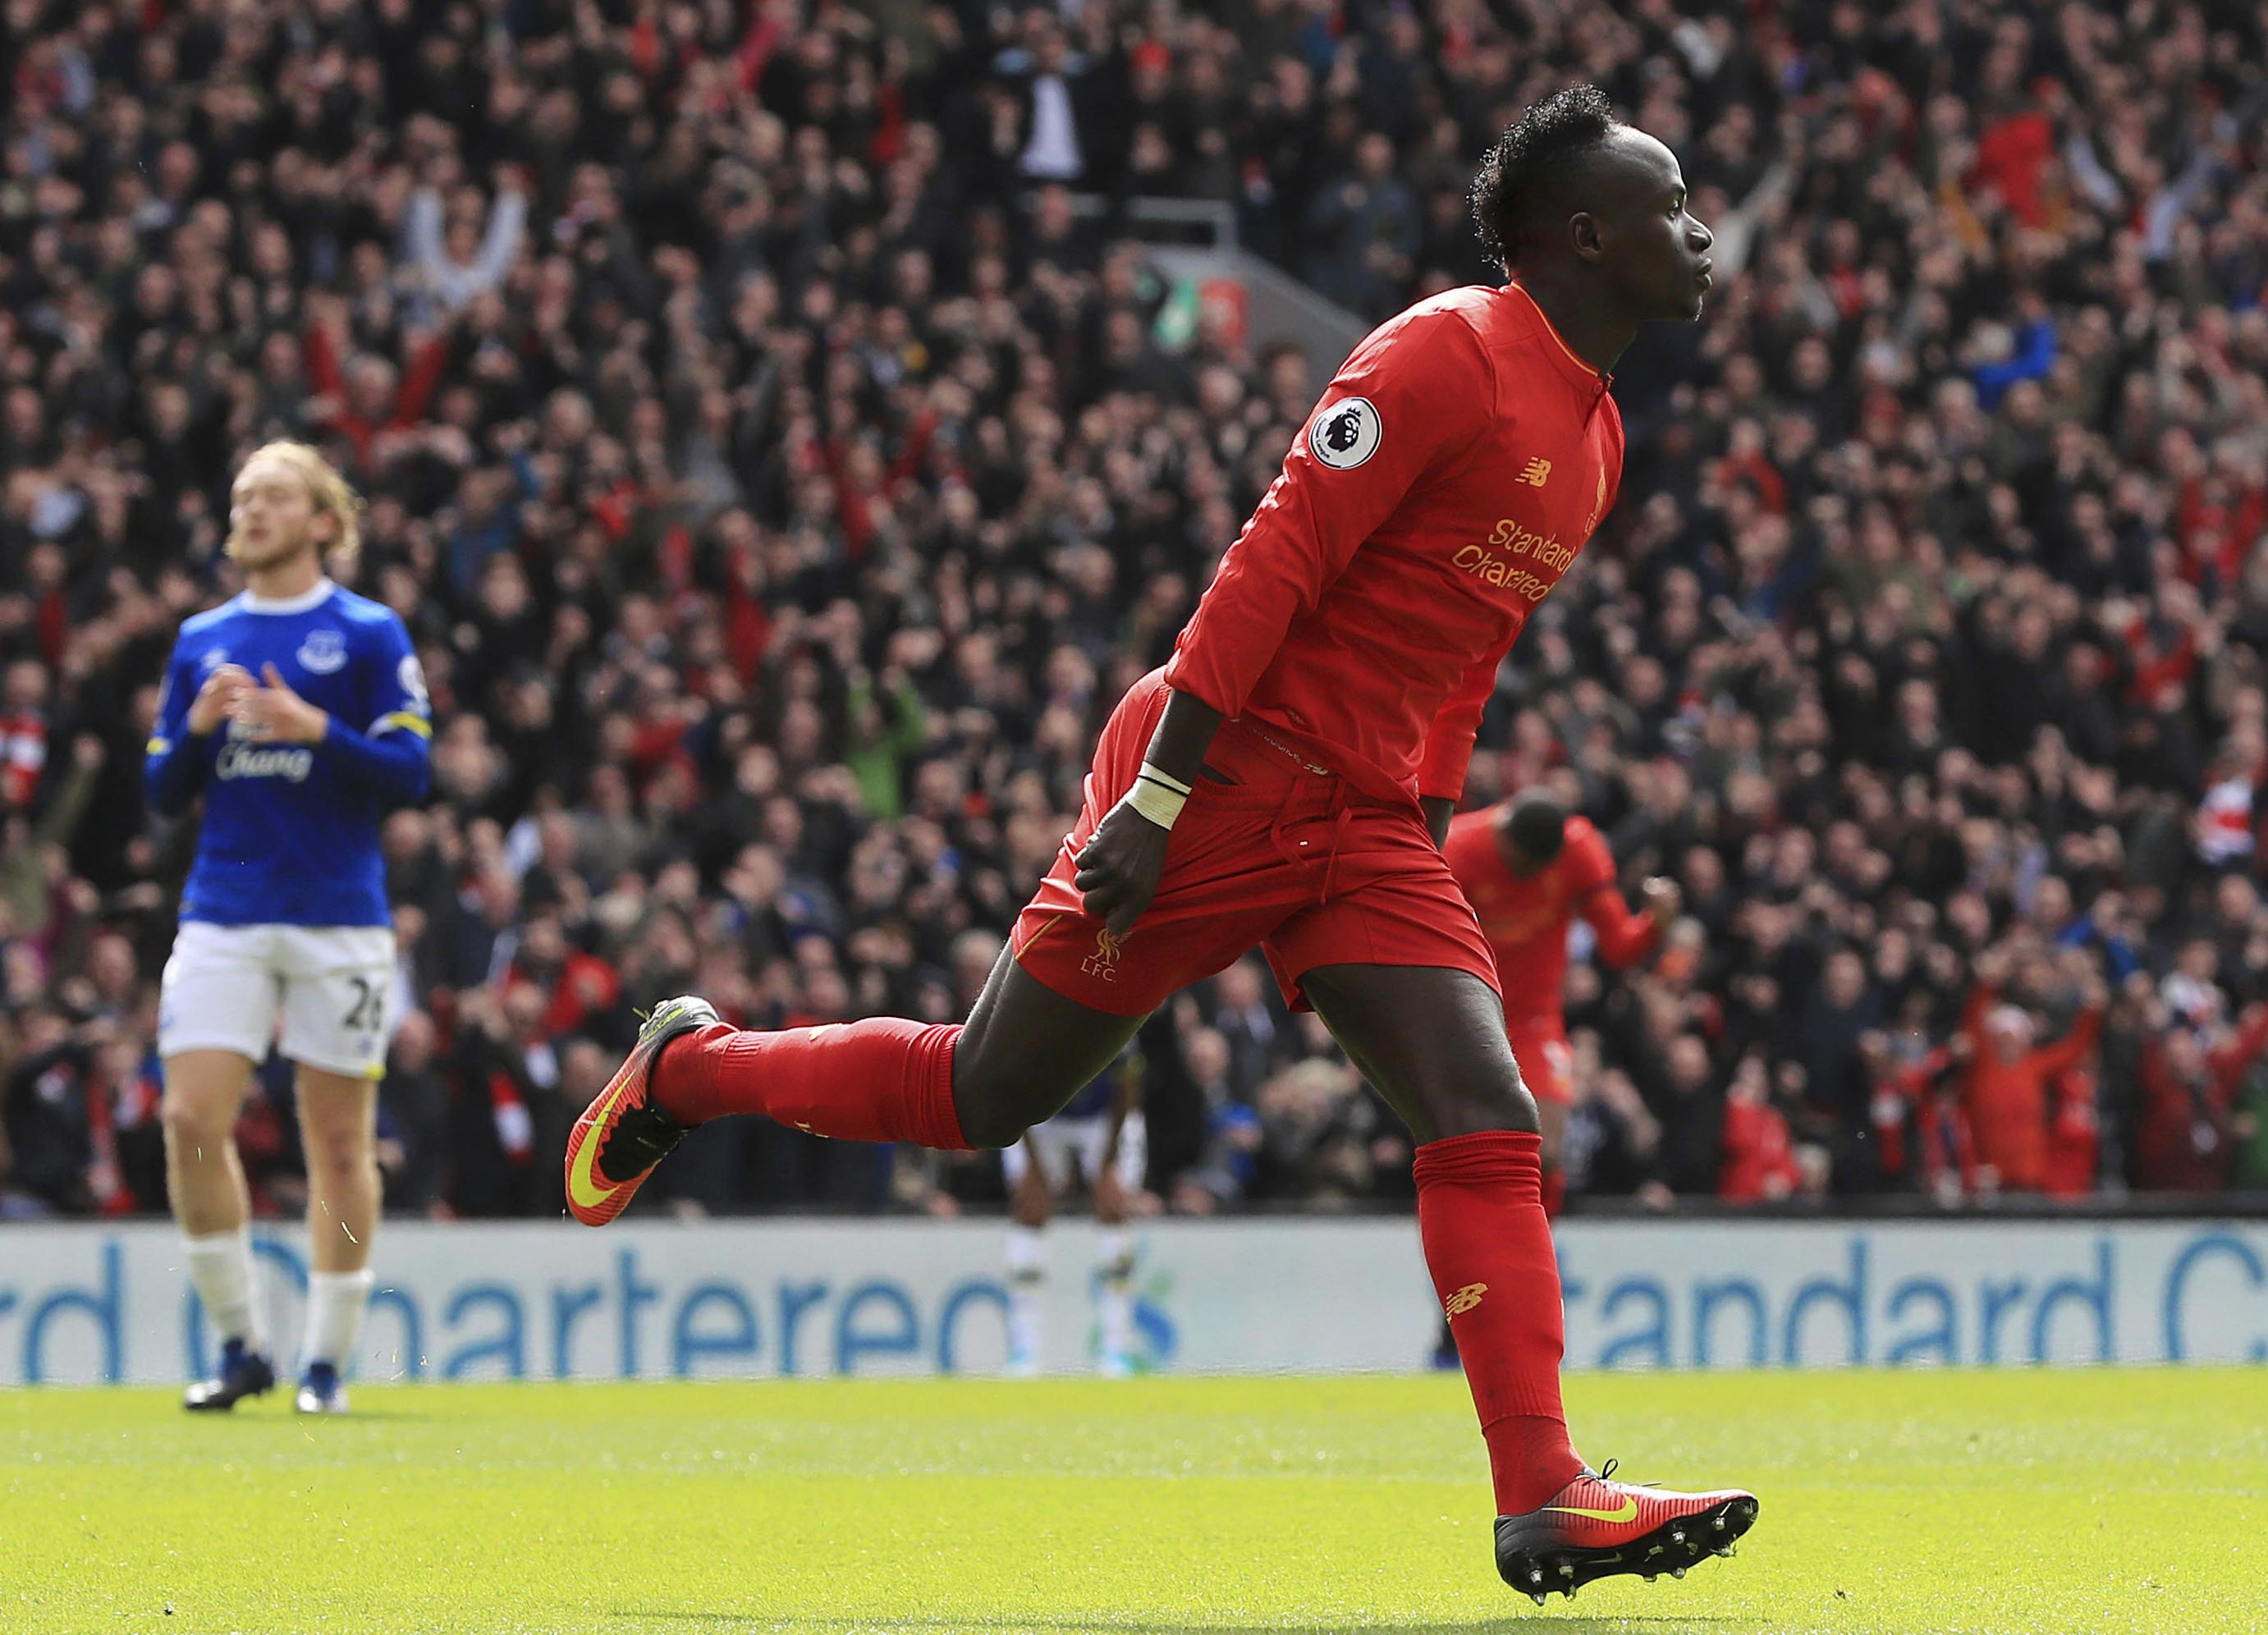 Liverpool's Sadio Mane celebrates scoring his side's first goal, during the English Premier League soccer match between Liverpool and Everton, at Anfield, in Liverpool, England, on Saturday April 1, 2017. Photo: AP